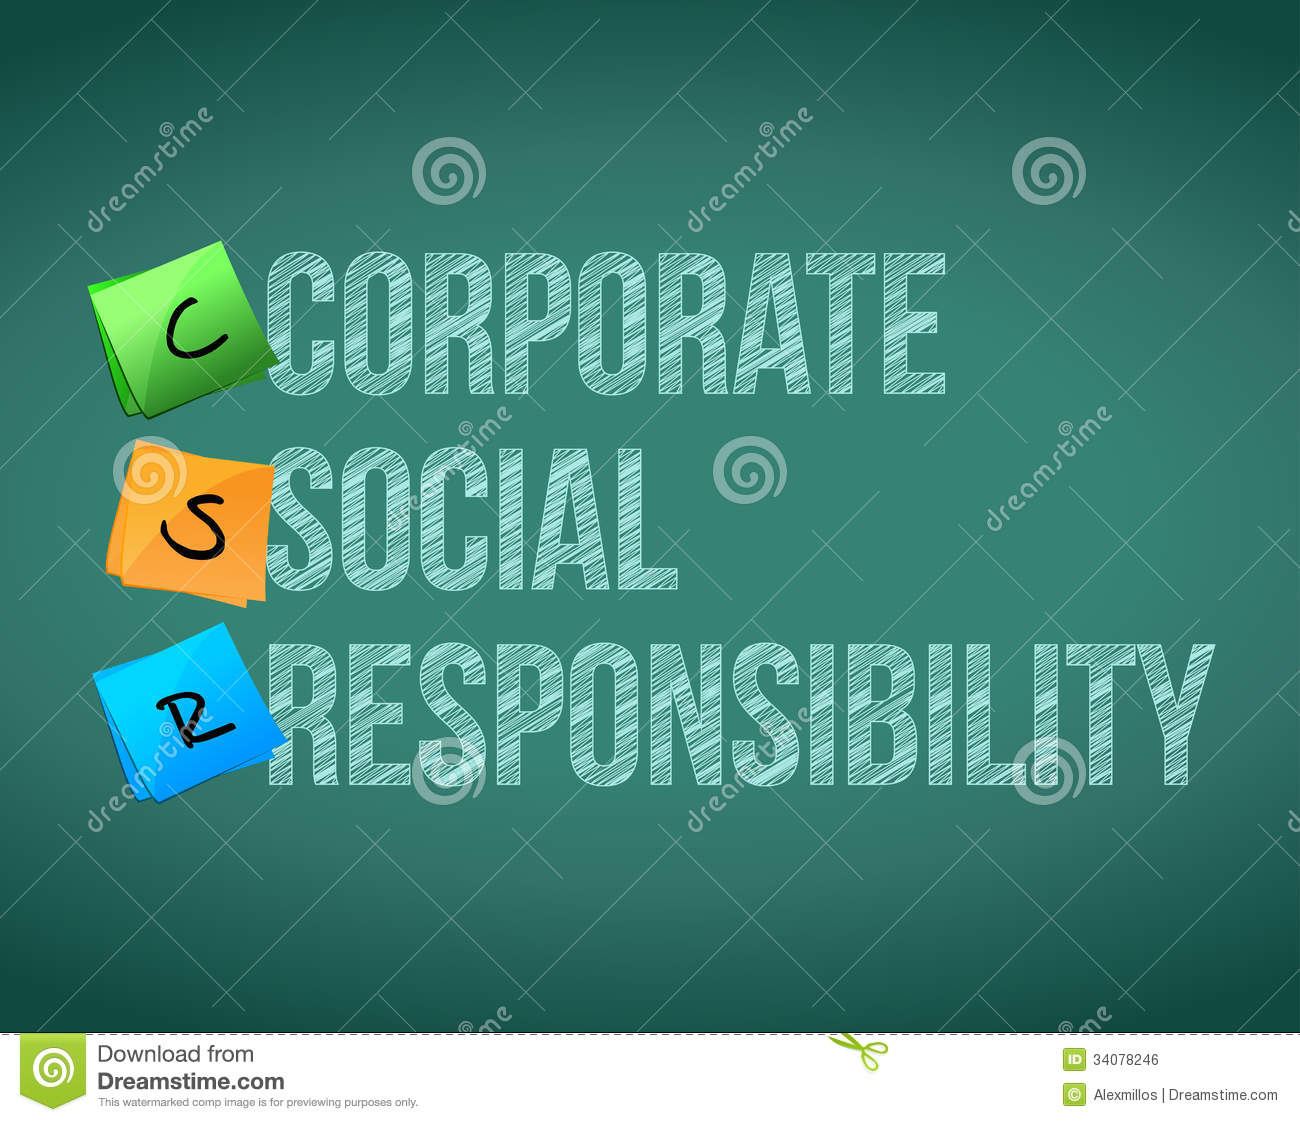 he corporate social responsibility tesco Corporate social responsibility at tesco, every little help makes a big difference our csr strategy focuses on making a significant social impact for the communities we serve.